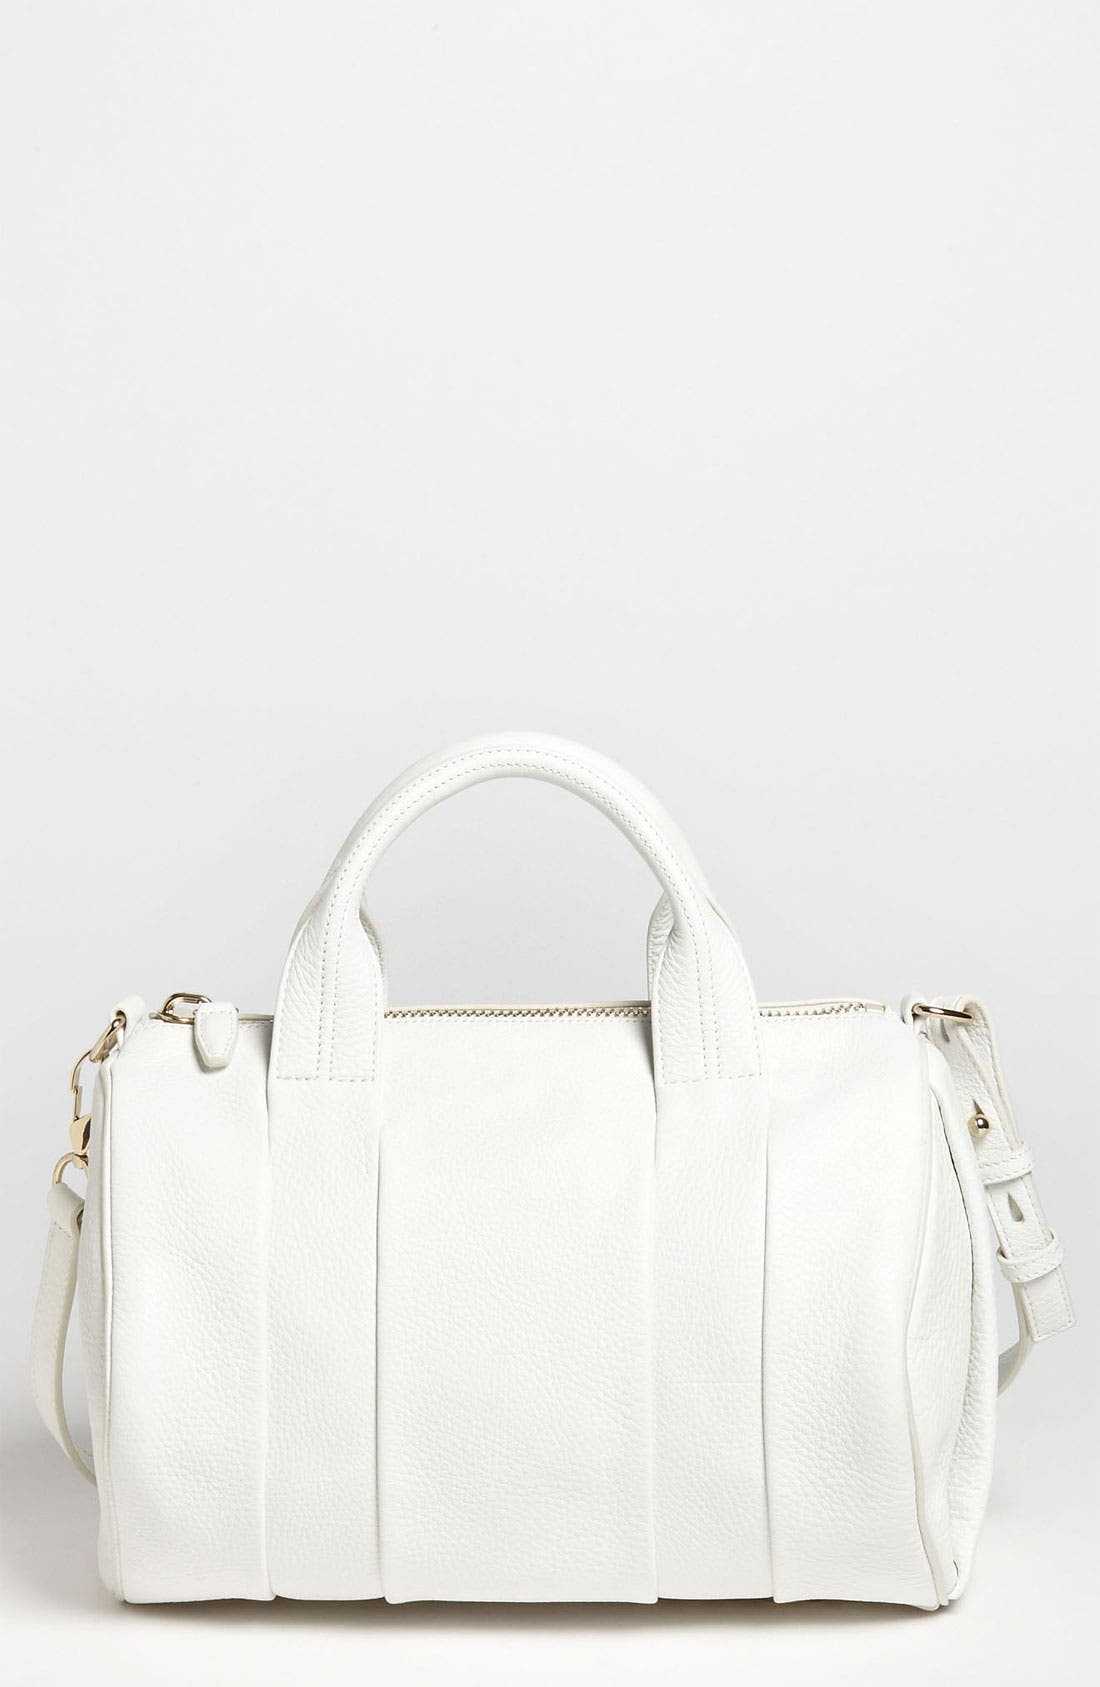 Main Image - Alexander Wang 'Rocco - Pale Gold' Leather Satchel